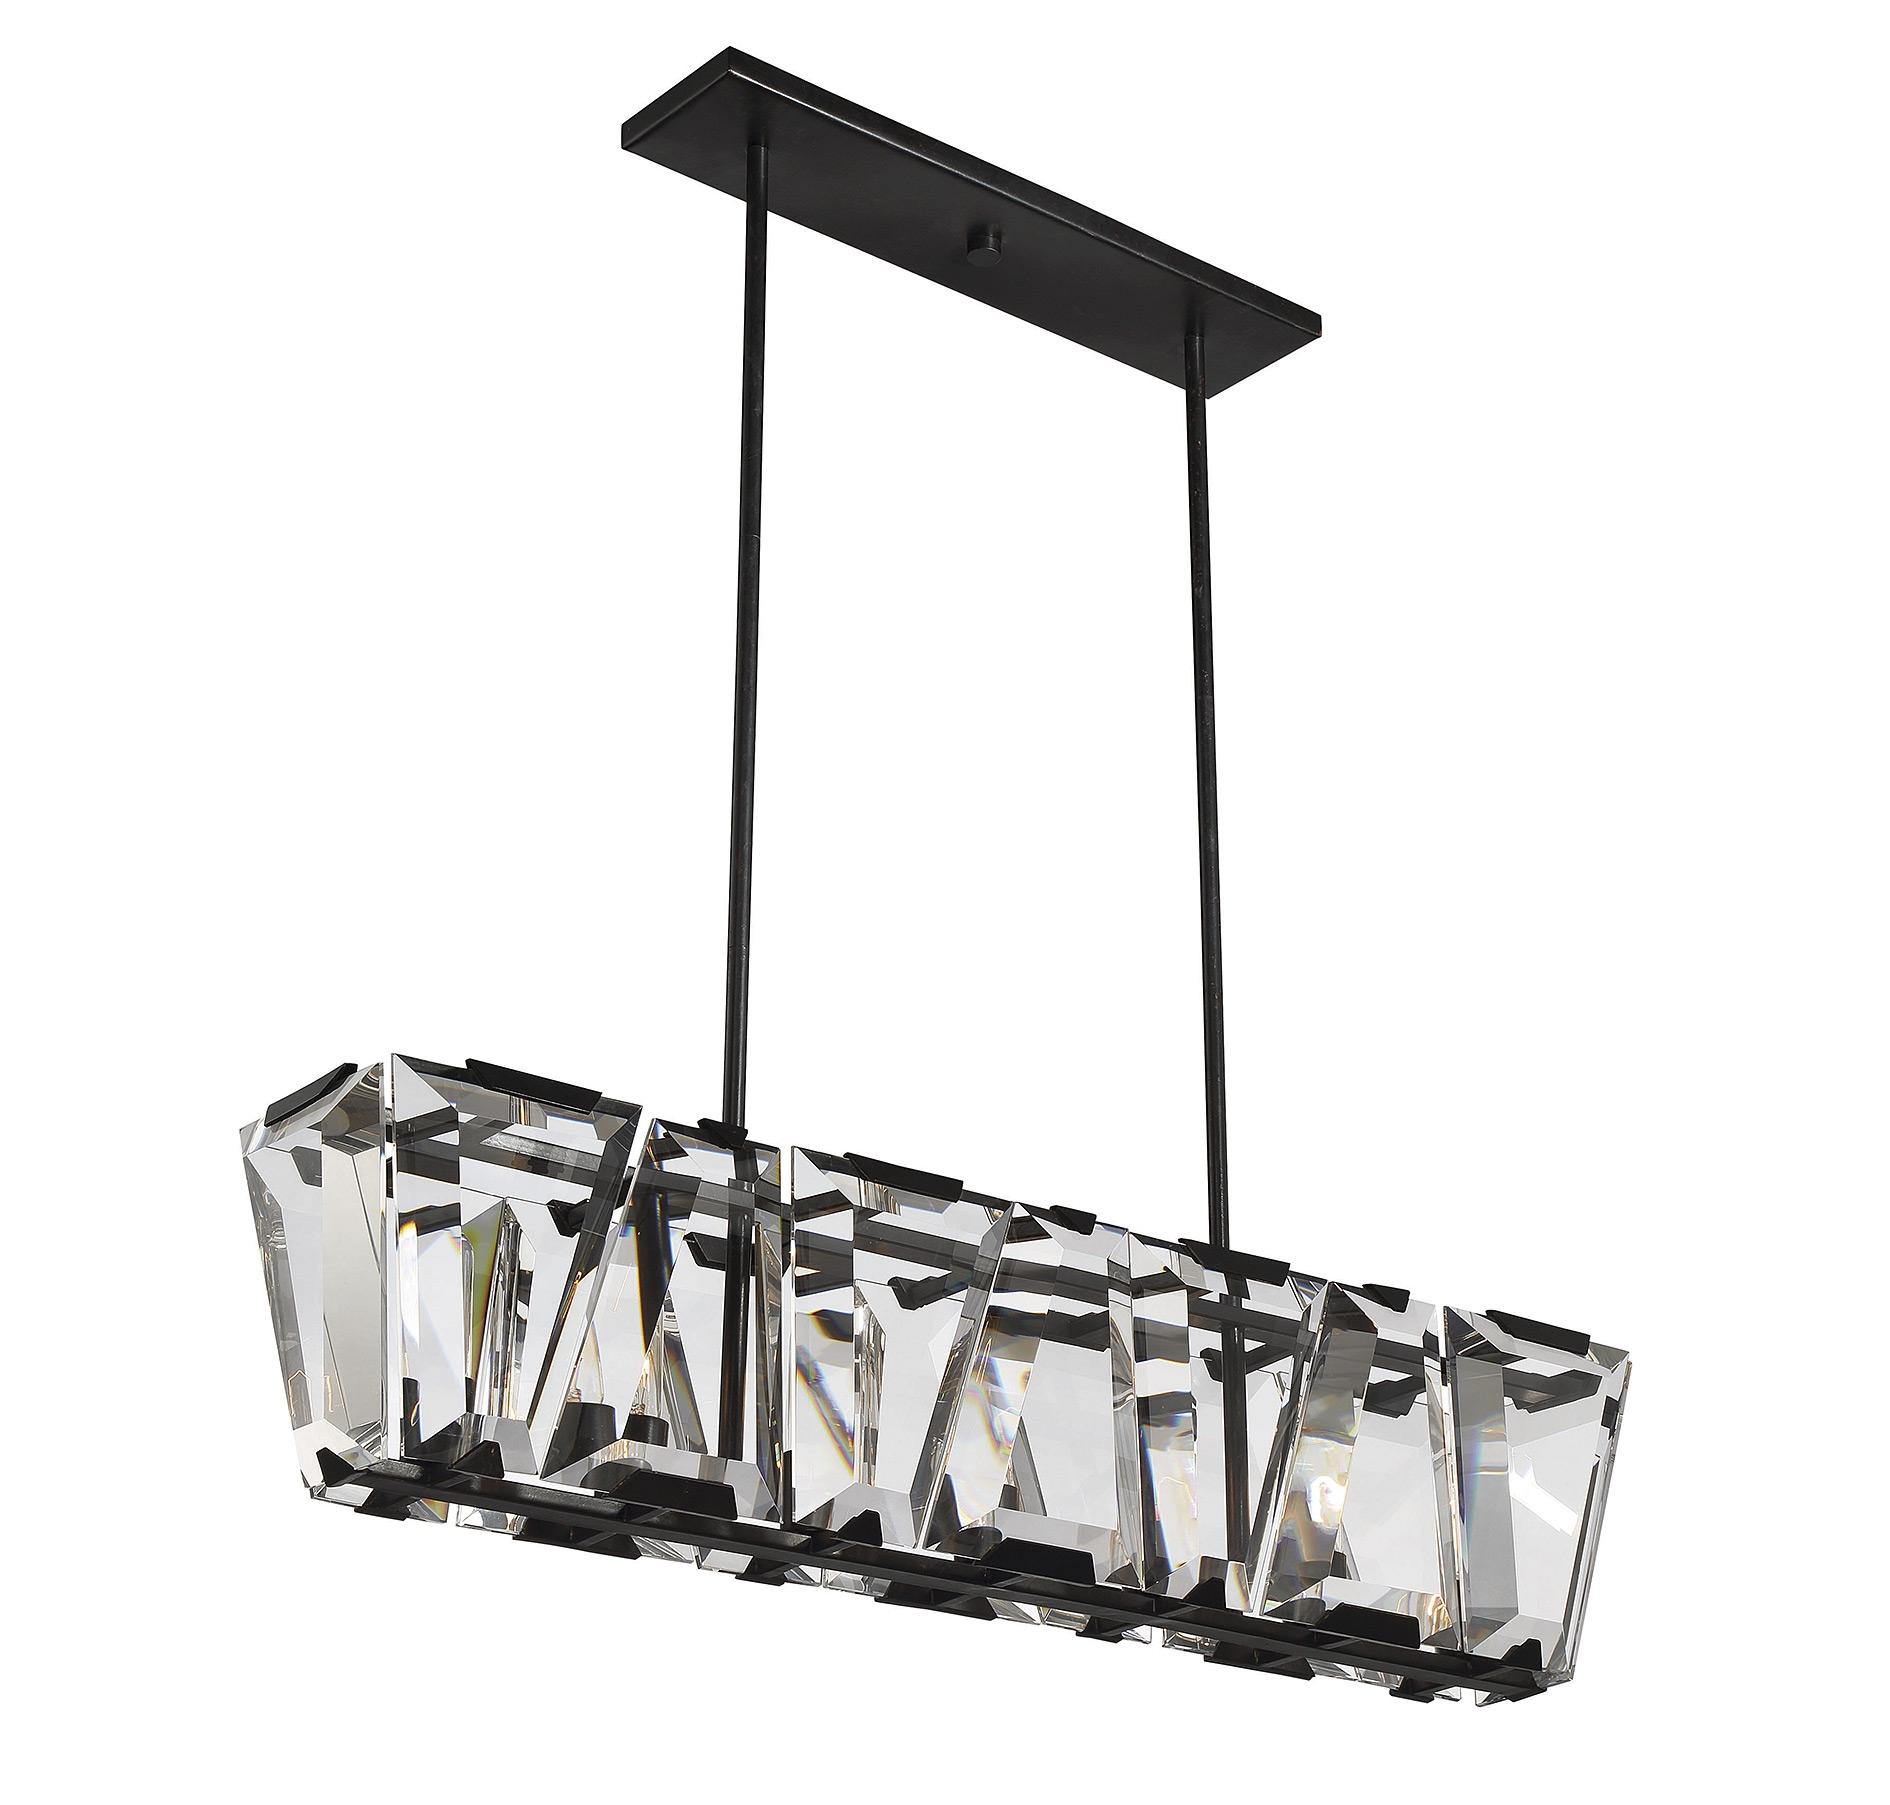 Chandelier Marvellous Linear Chandelier Lighting Linear Crystal Intended For 7 Light Chandeliers (Image 1 of 25)